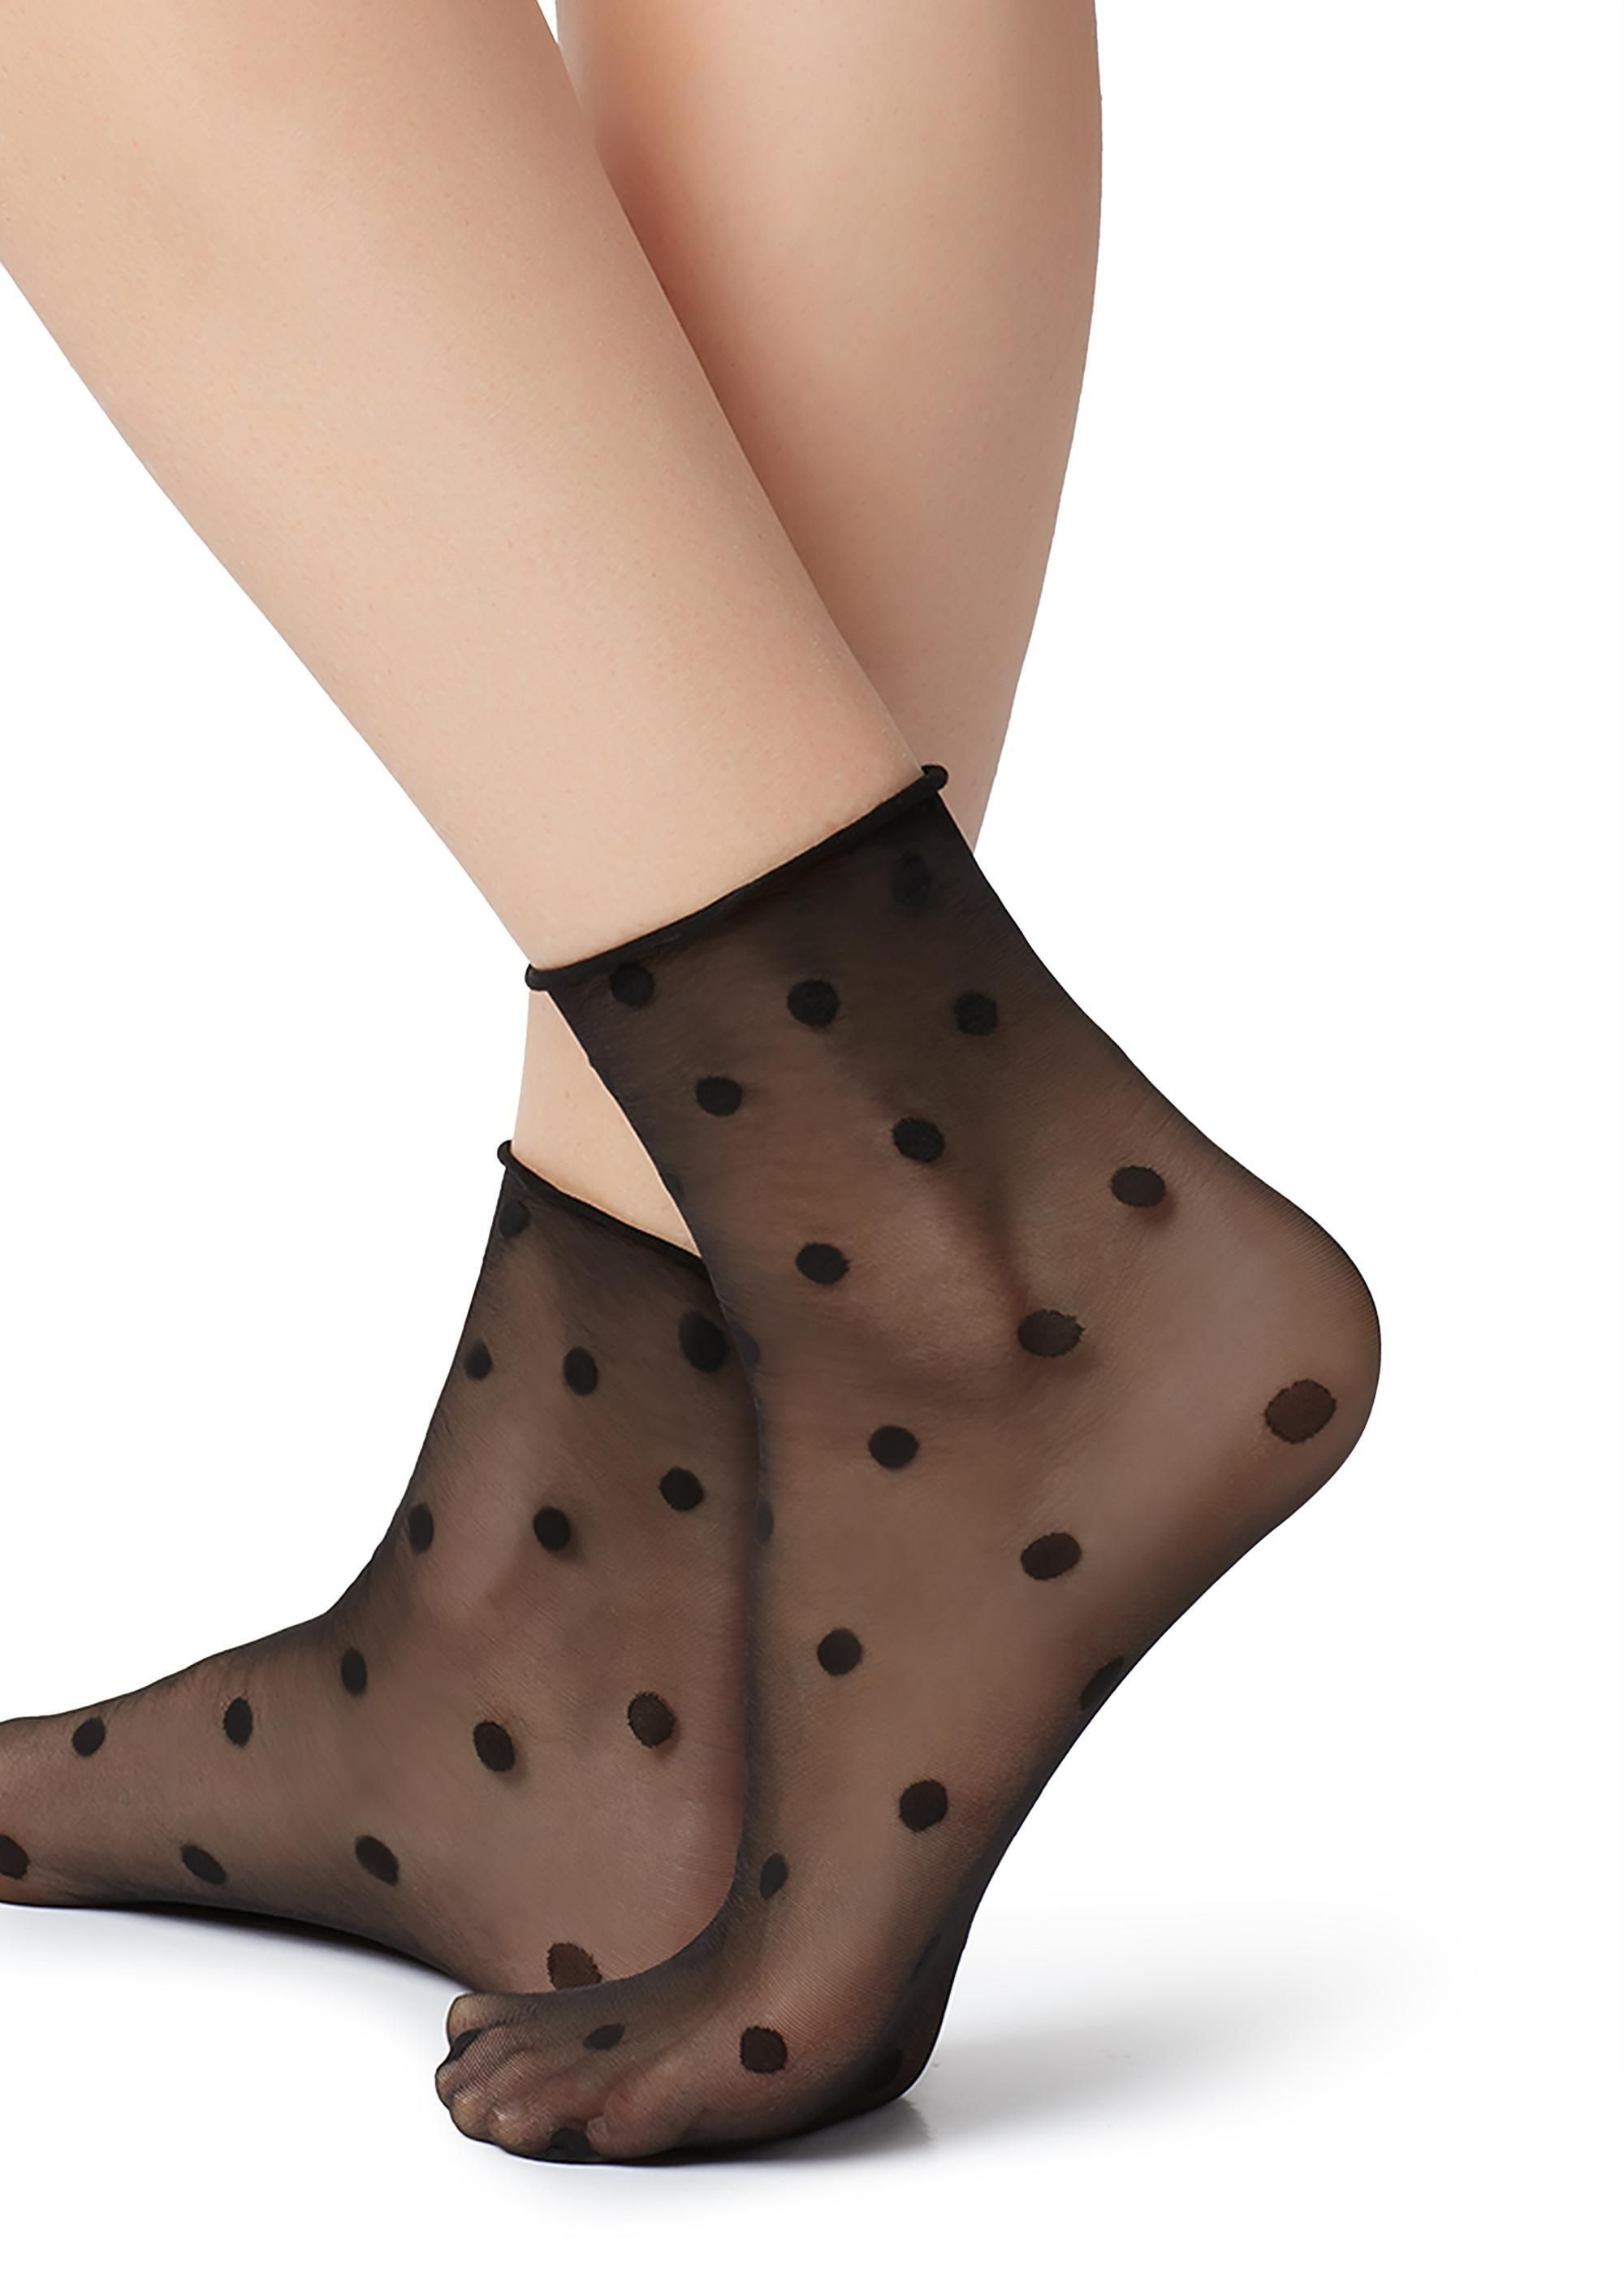 e00a98b48 Buy Patterned Socks on our official Calzedonia website. Experience our long  history of tradition and quality.